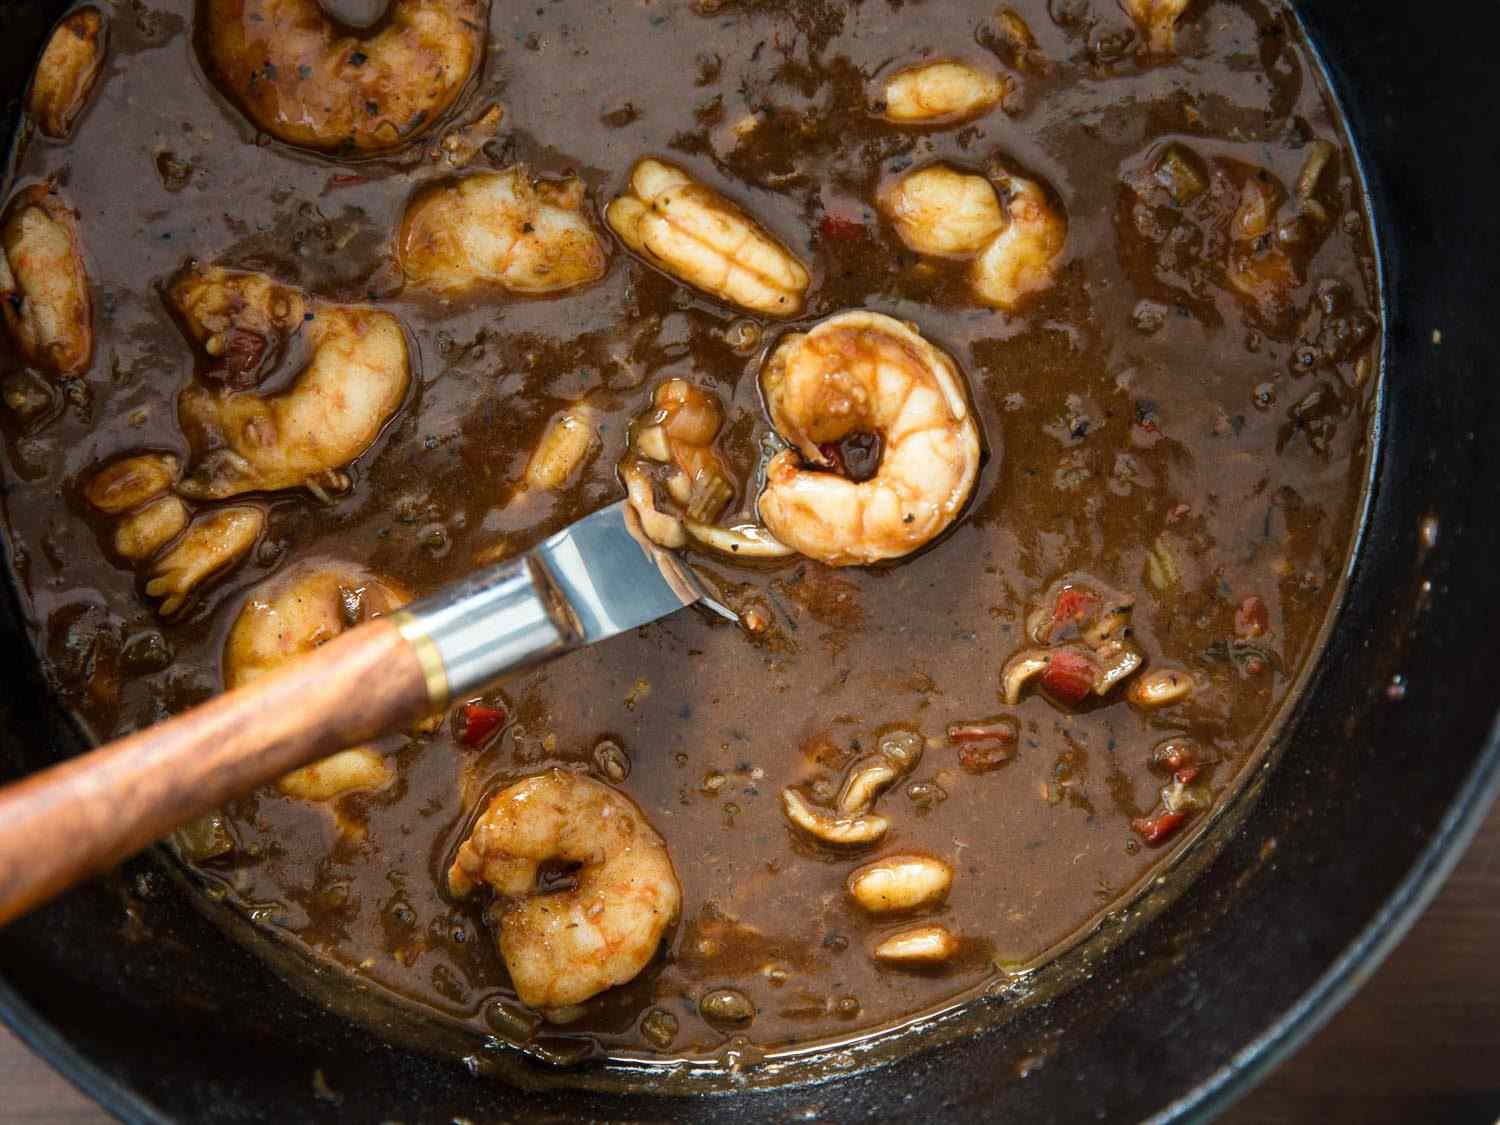 shrimp etouffee in the pot, made with a dark brown roux